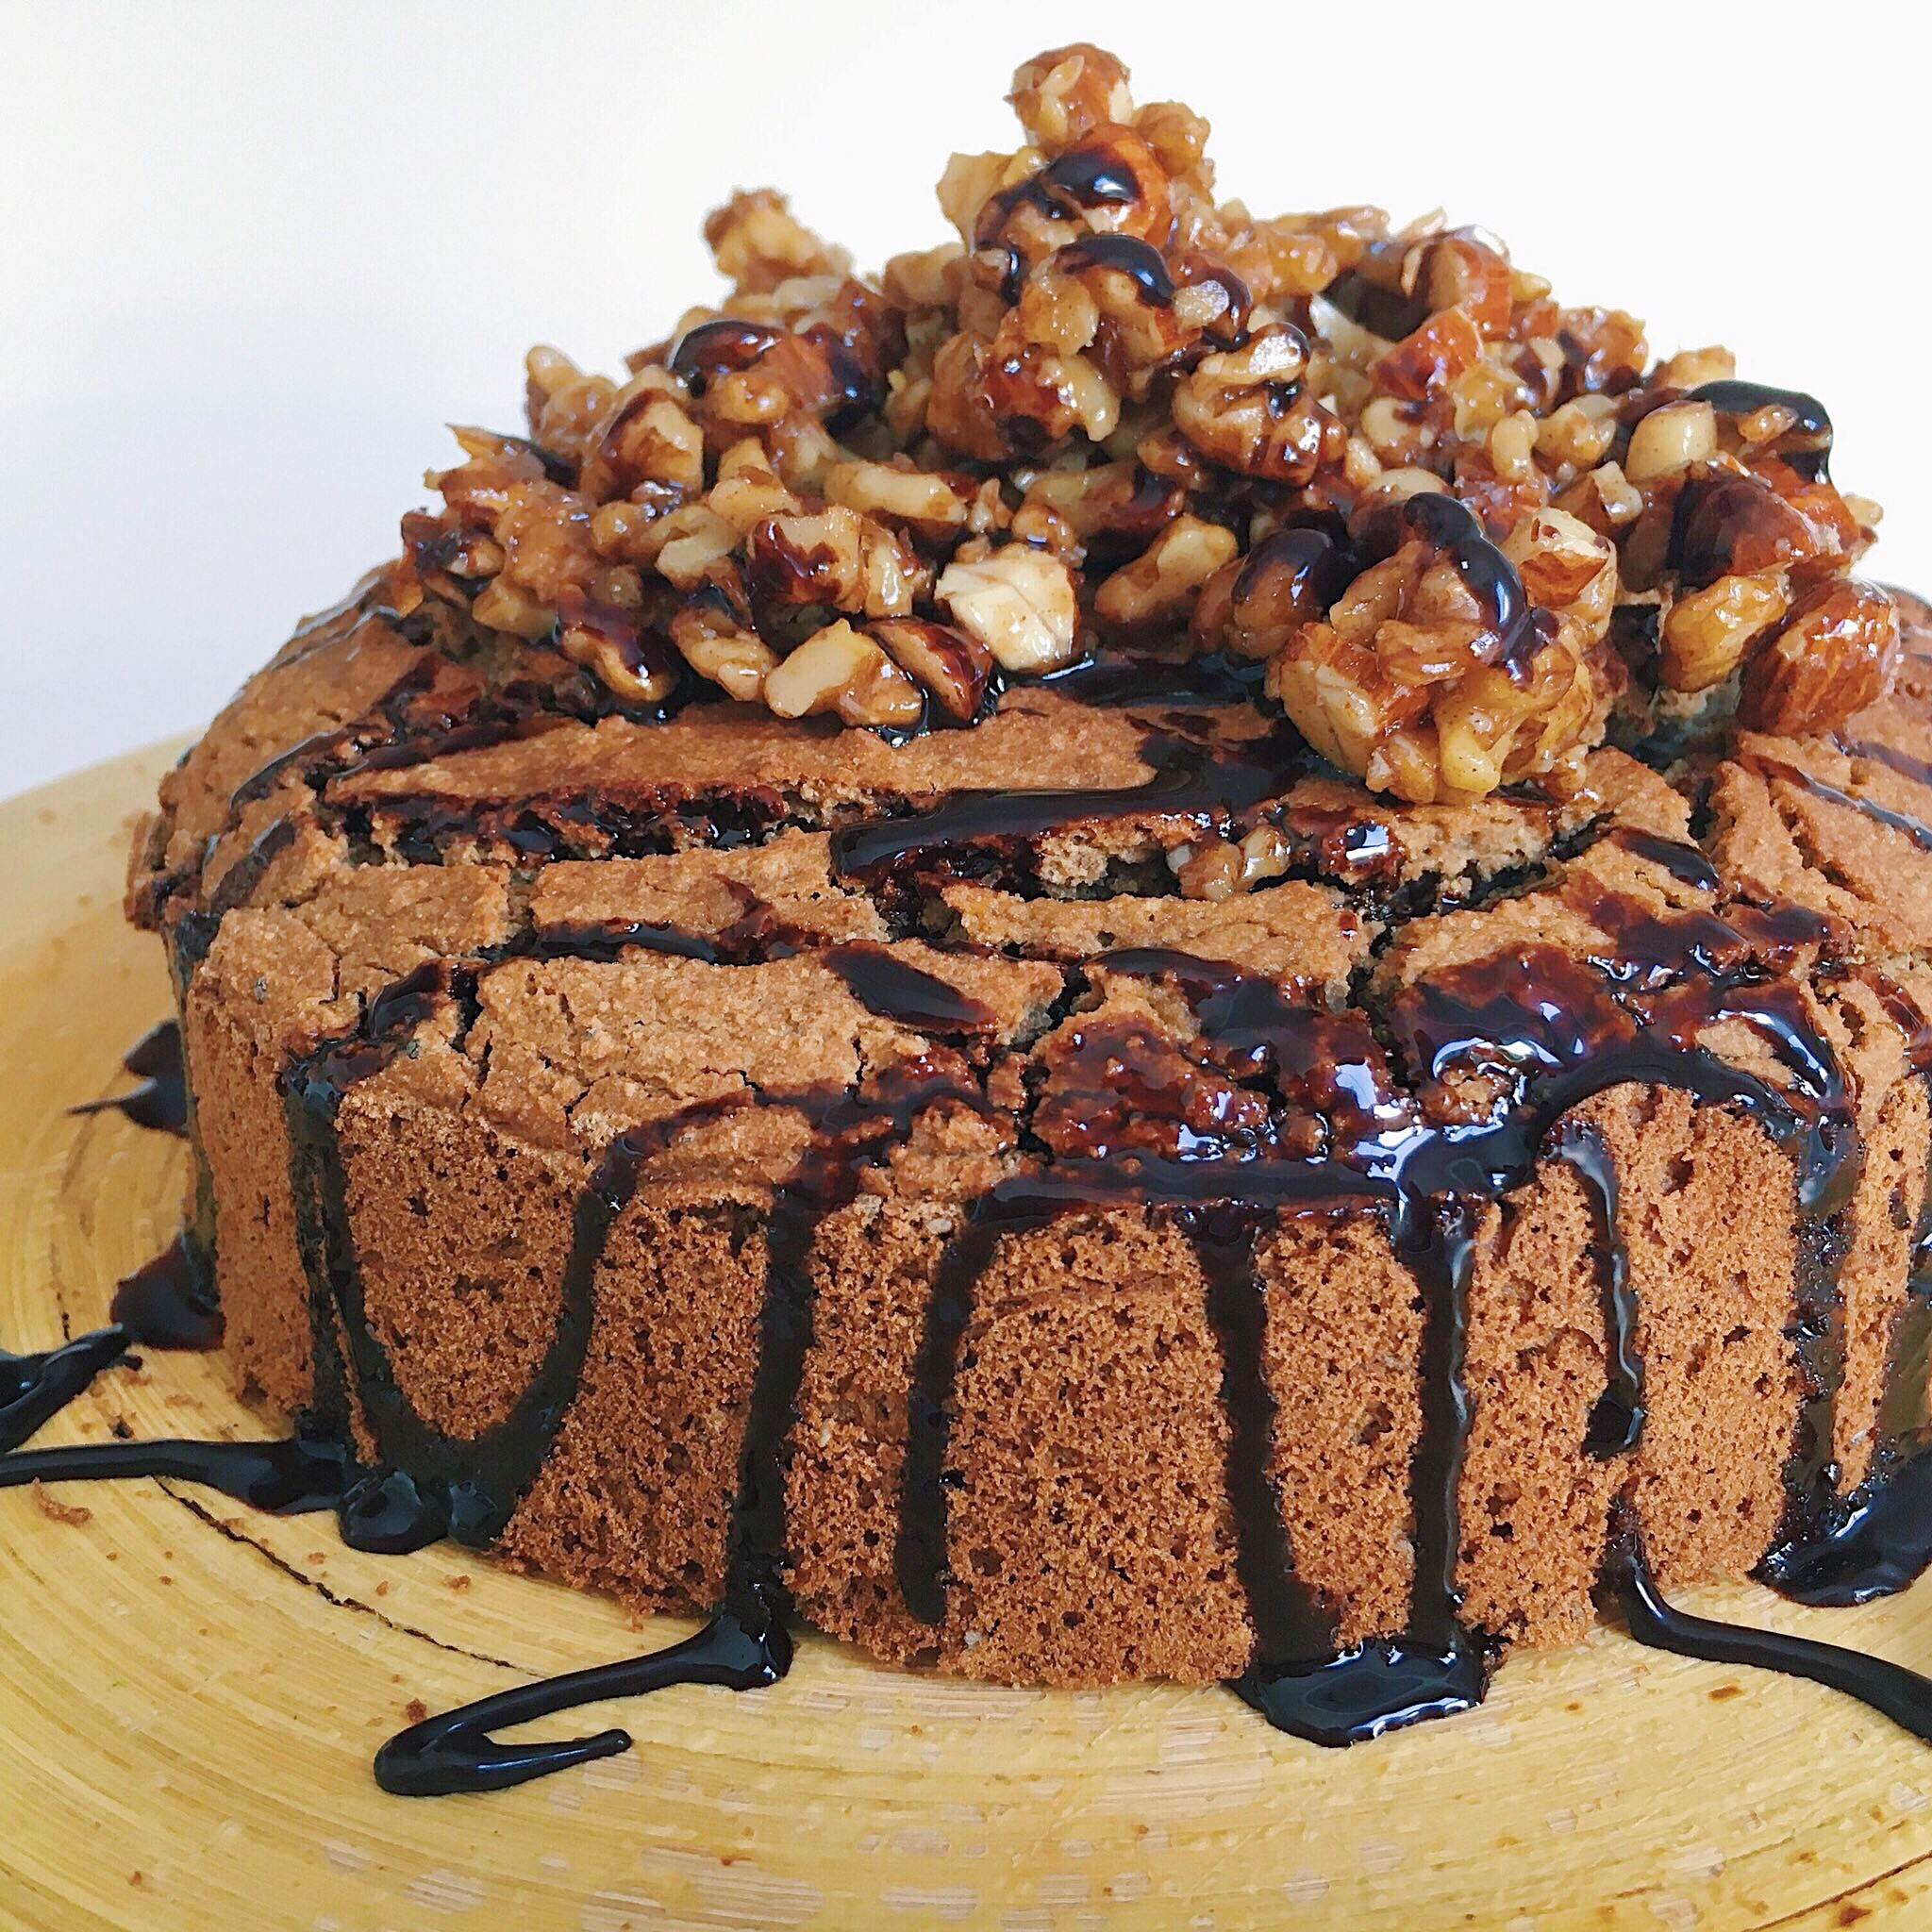 Vegan coffee and banana cake with candied nut brittle and chocolate sauce